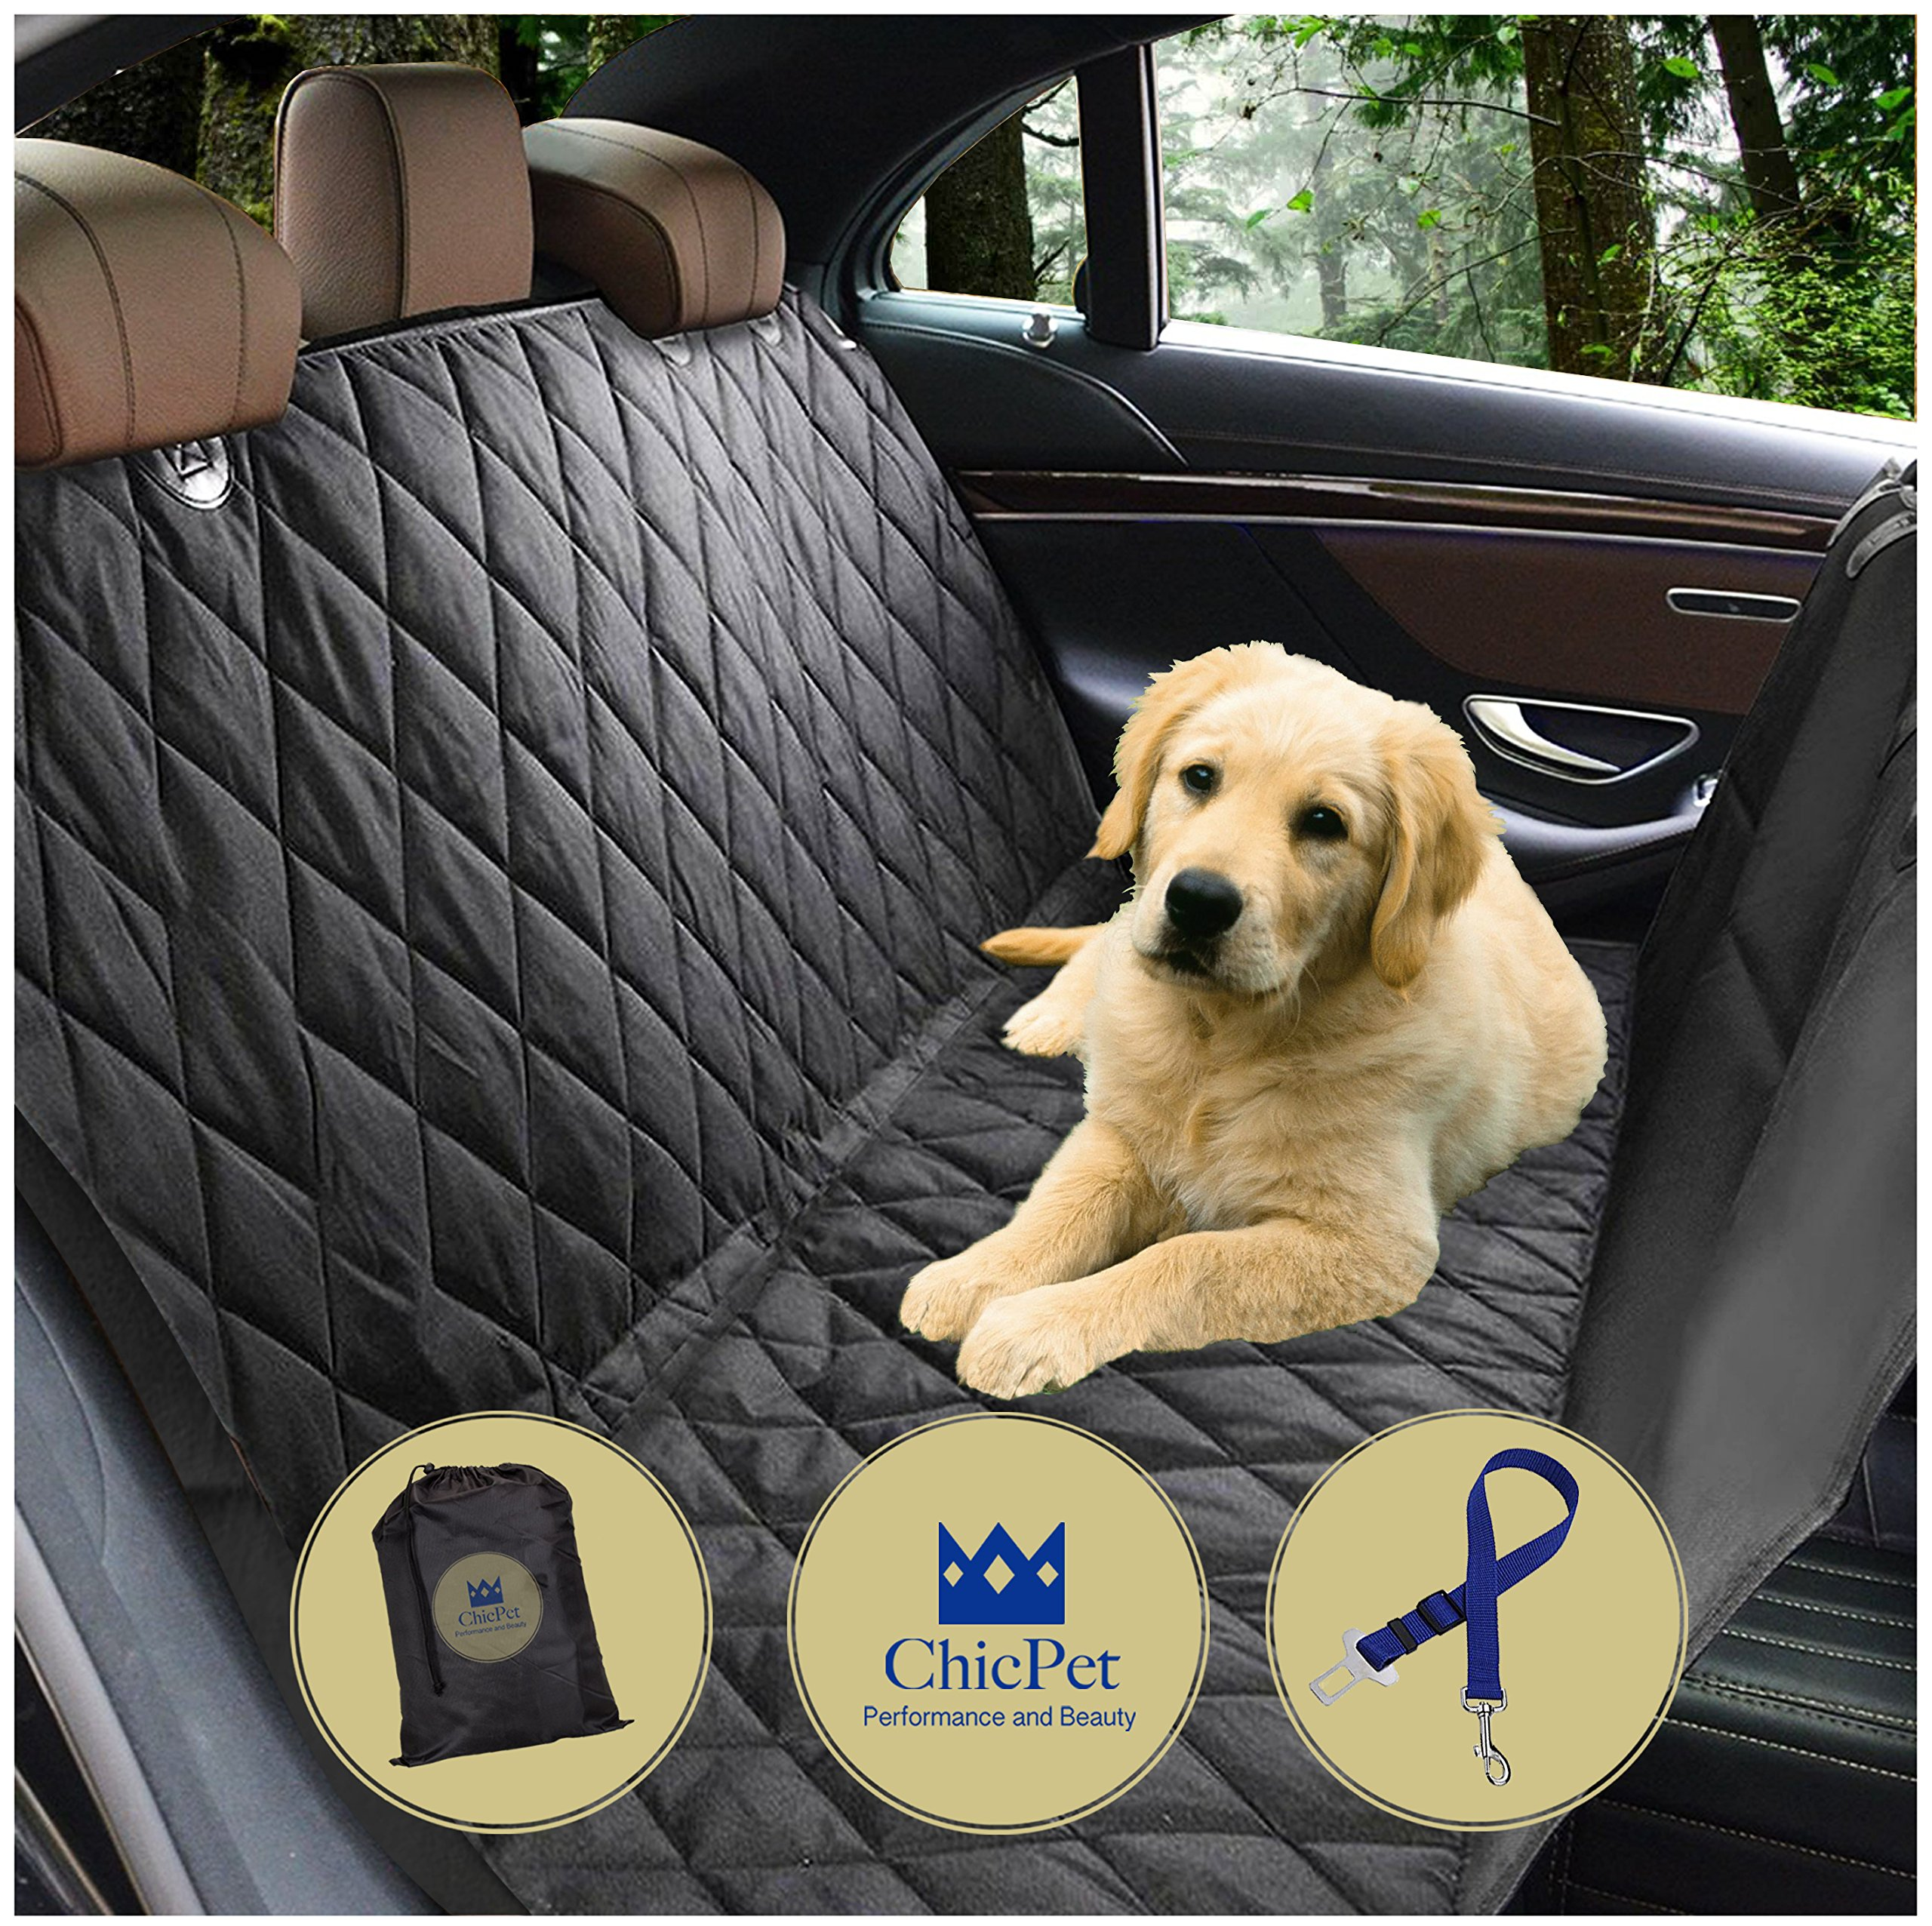 Dog Car Seat Cover, Boot Liner, Dog Hammock, For Pets and Kids with Pet Seat Belt Lead and Storage Bag, Waterproof, Washable, Non Slip, Fits all Cars Trucks SUVs Black